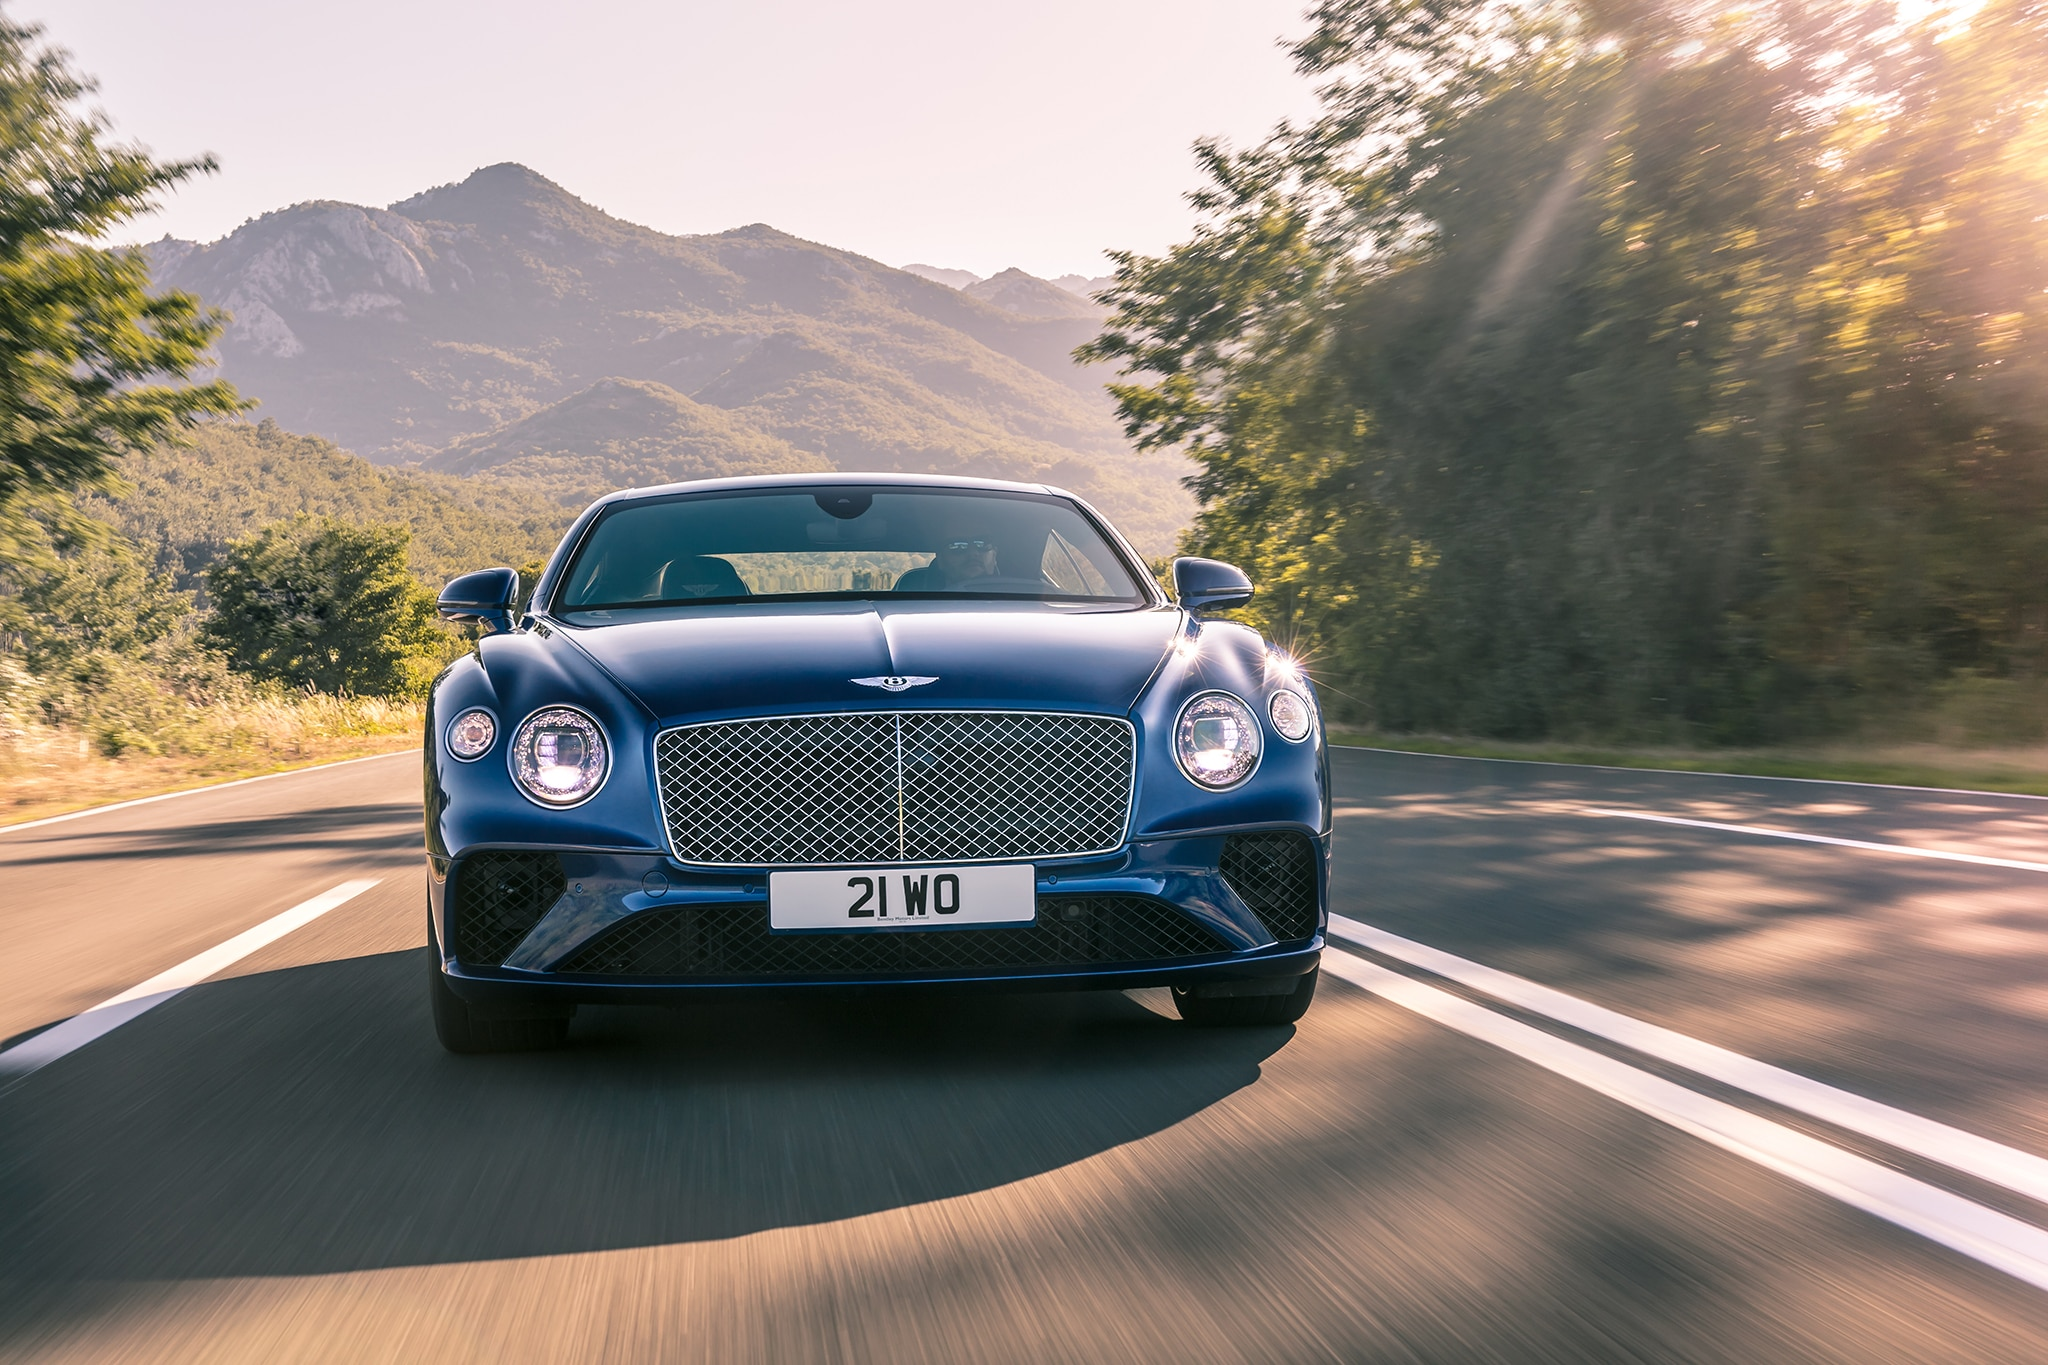 2019 Bentley Continental GT Front View In Motion